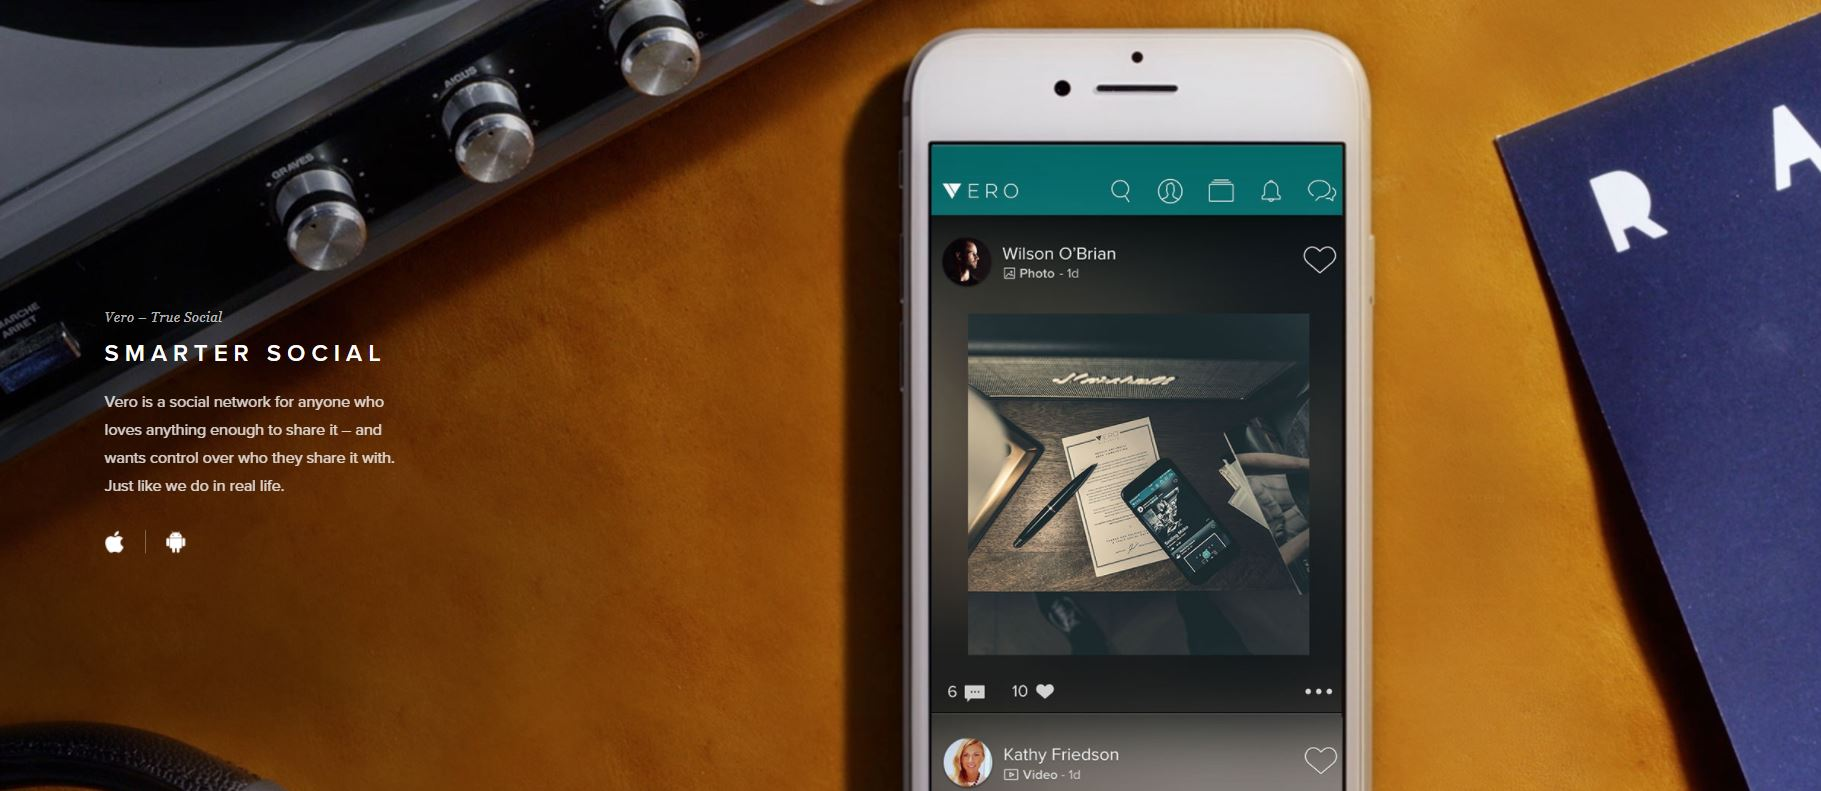 So, you want to start a social network? How Vero went from hero to zero in under a week